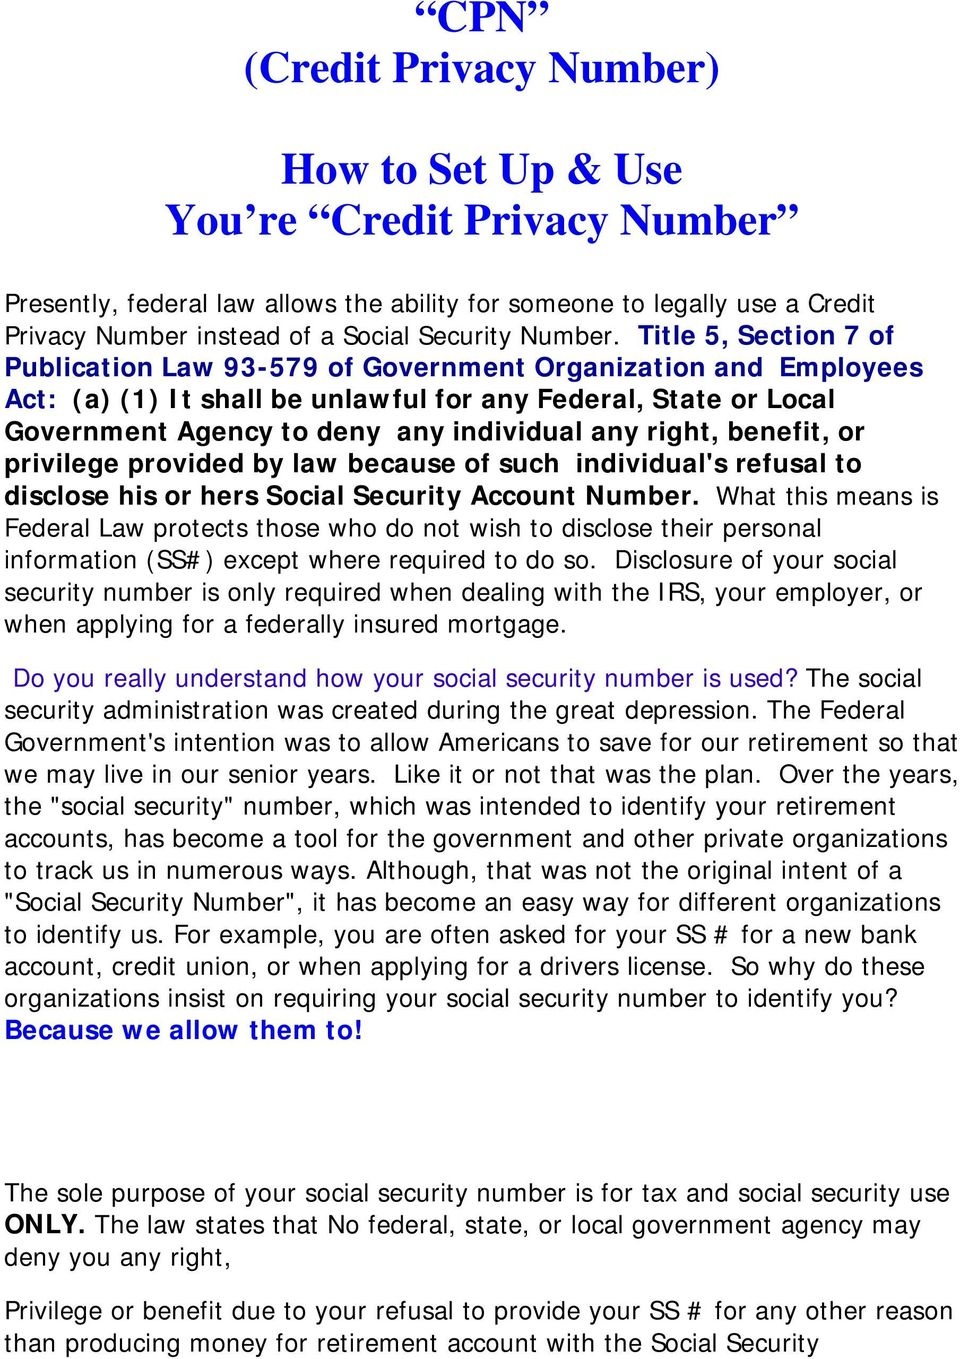 CPN (Credit Privacy Number) How to Set Up & Use You re Credit